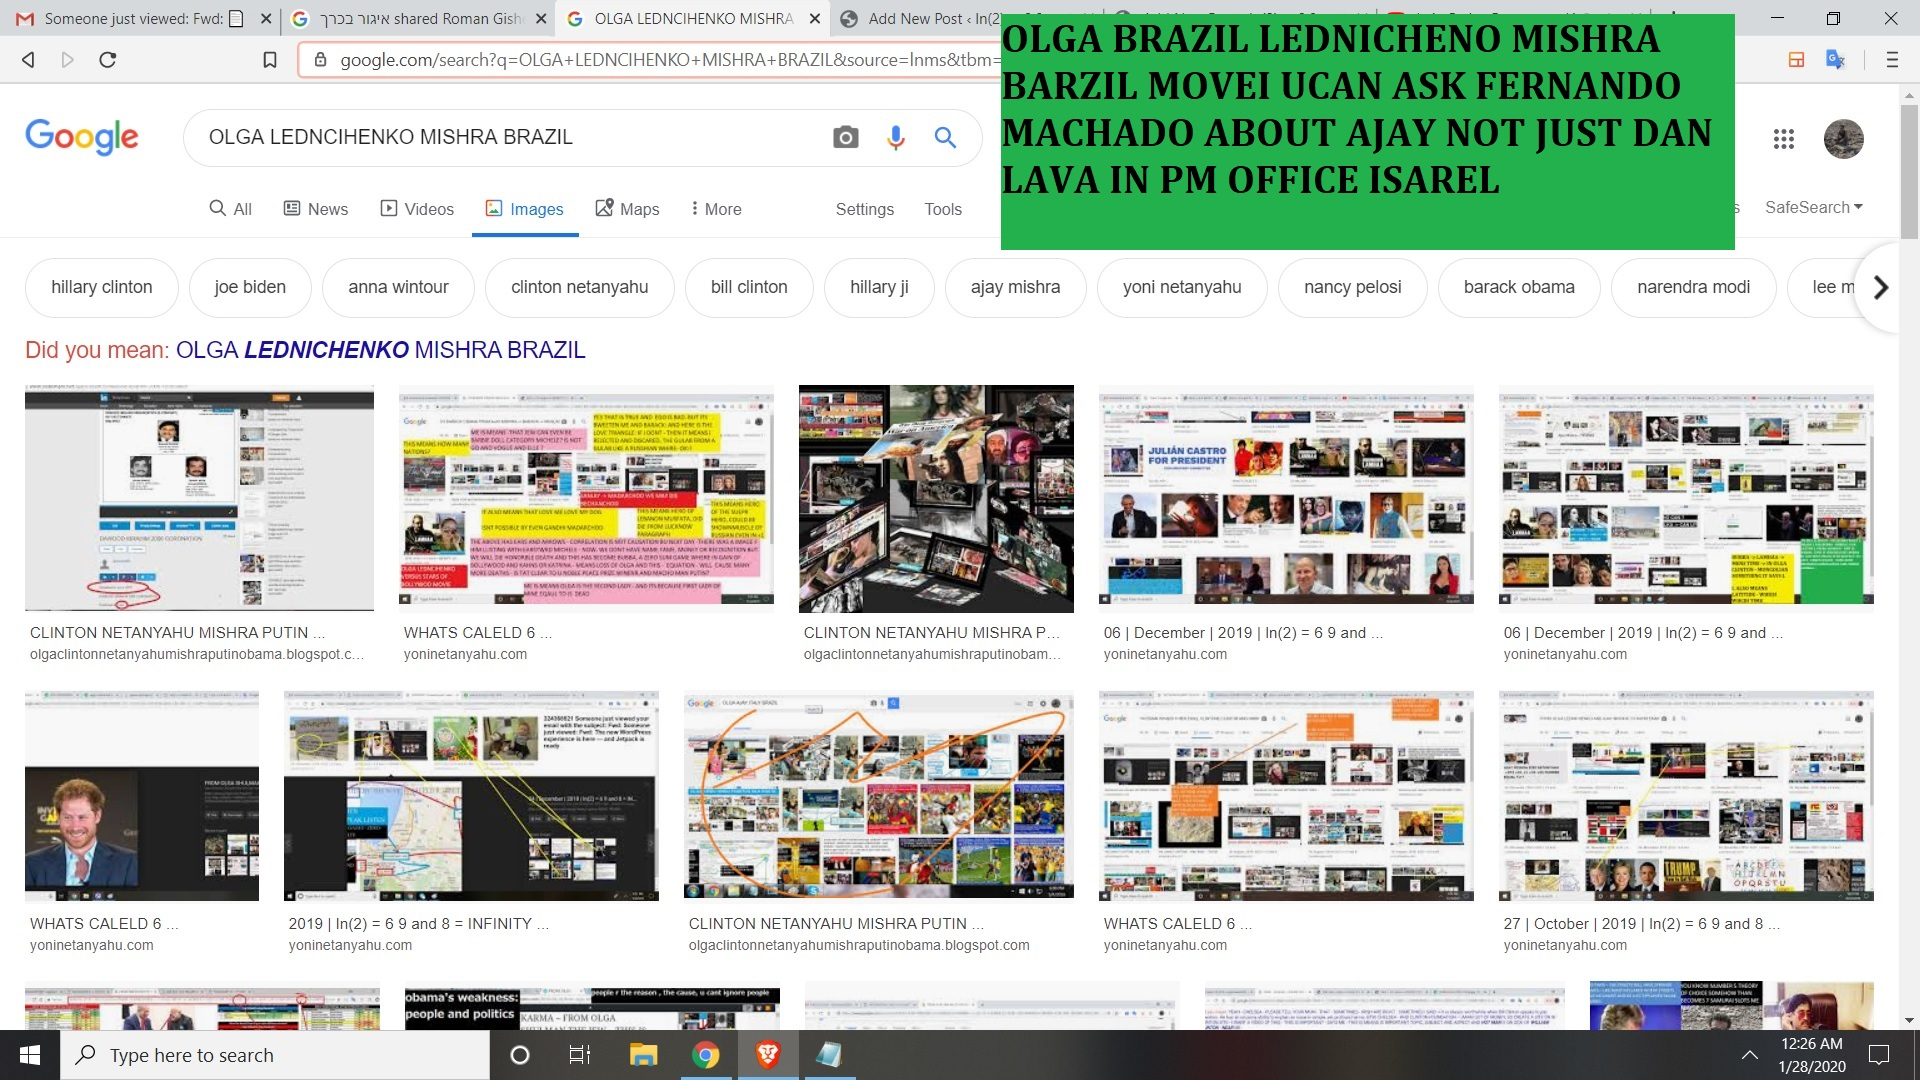 OLGA BRAZIL LEDNCIHENO MISAR BARZIL MOVEI UCAN ASK FERNANDO MACHADO ABOUT AJAY NOT JUST DAN LAVA IN PM OFFICE ISAREL